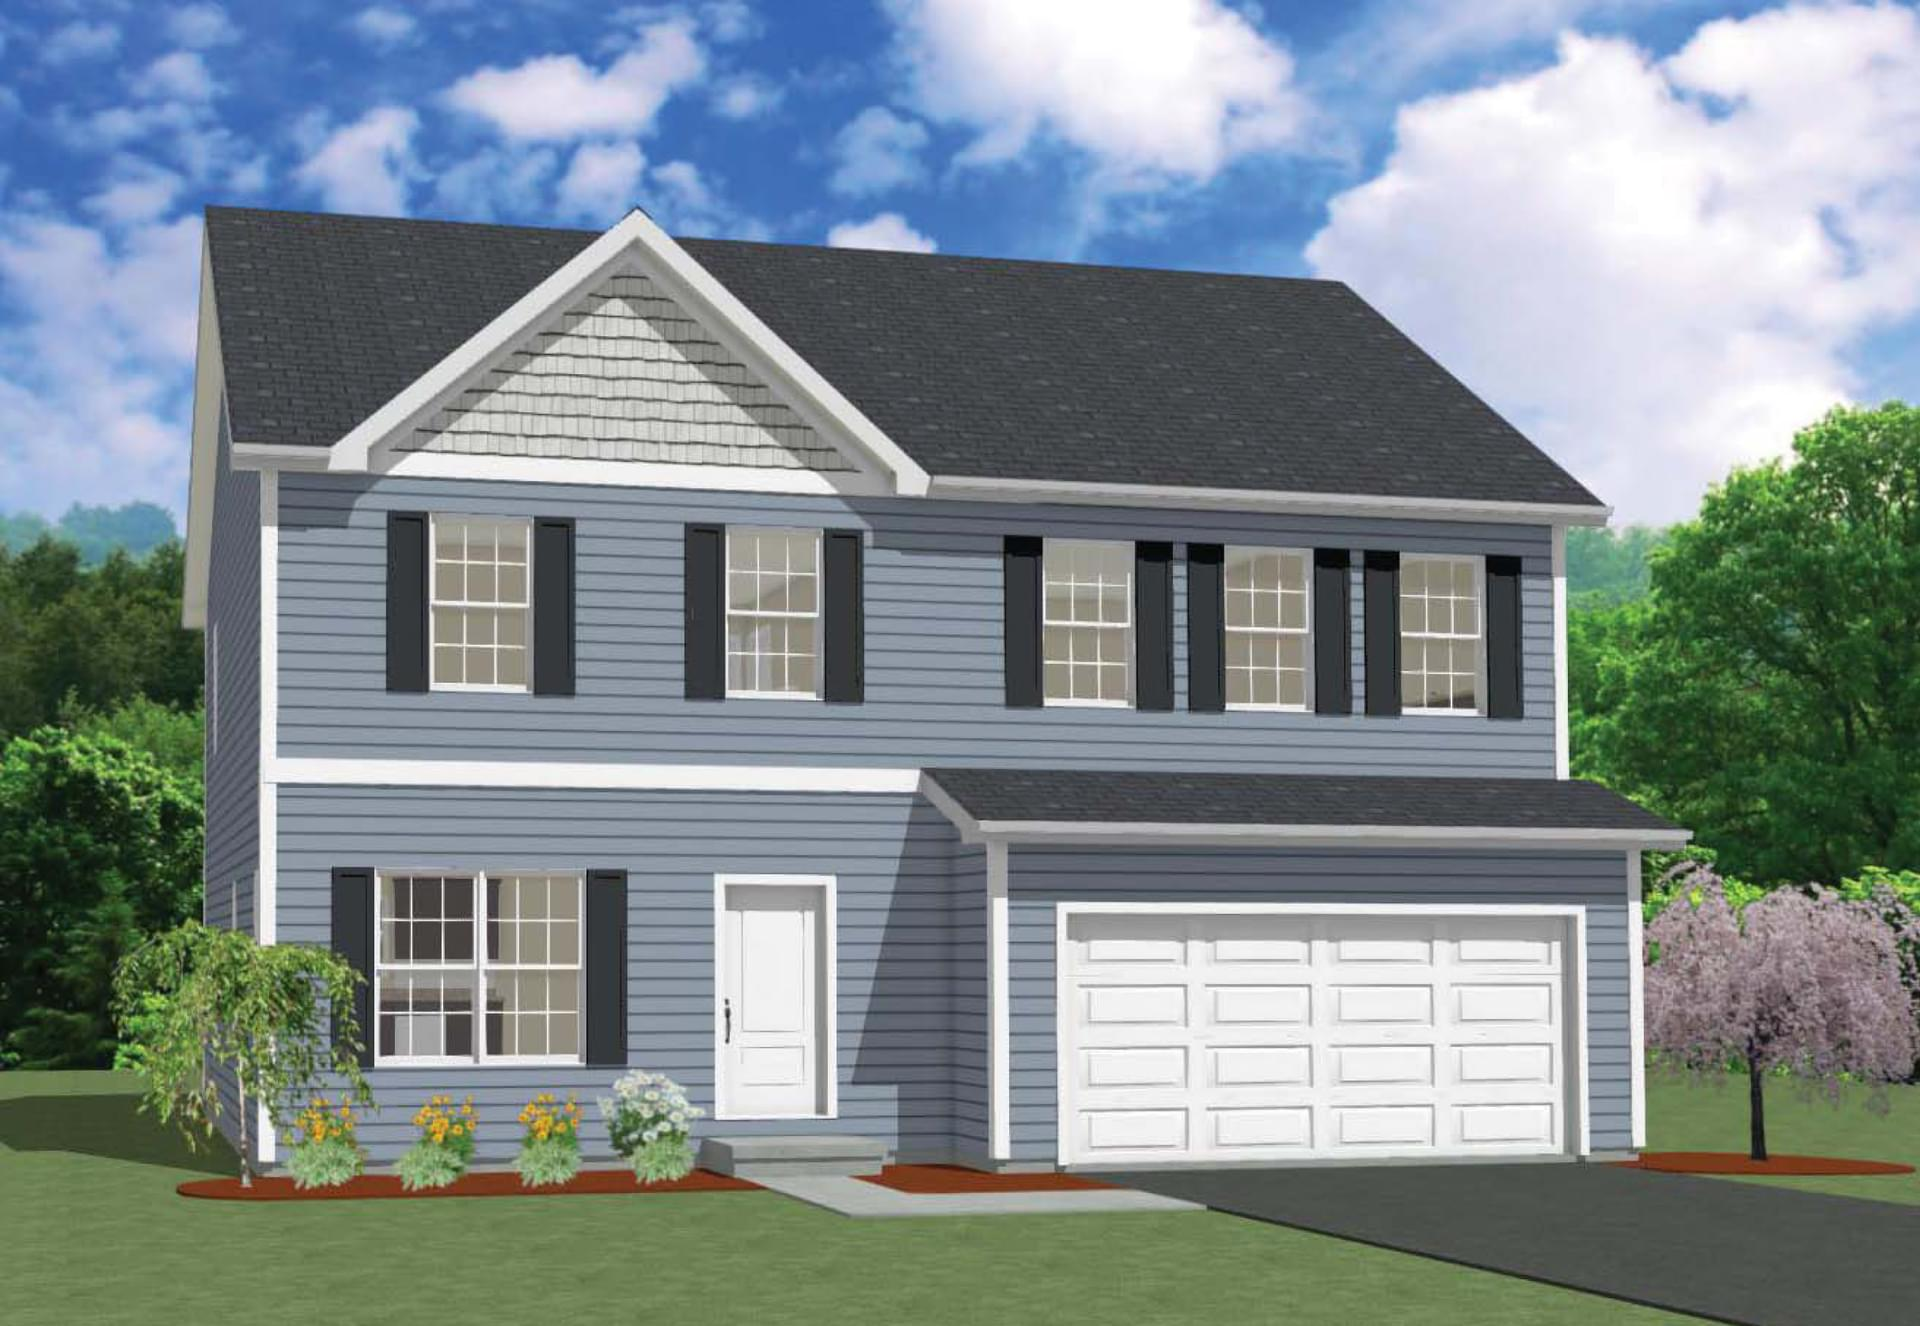 - Available Brennan Homes Floorplan